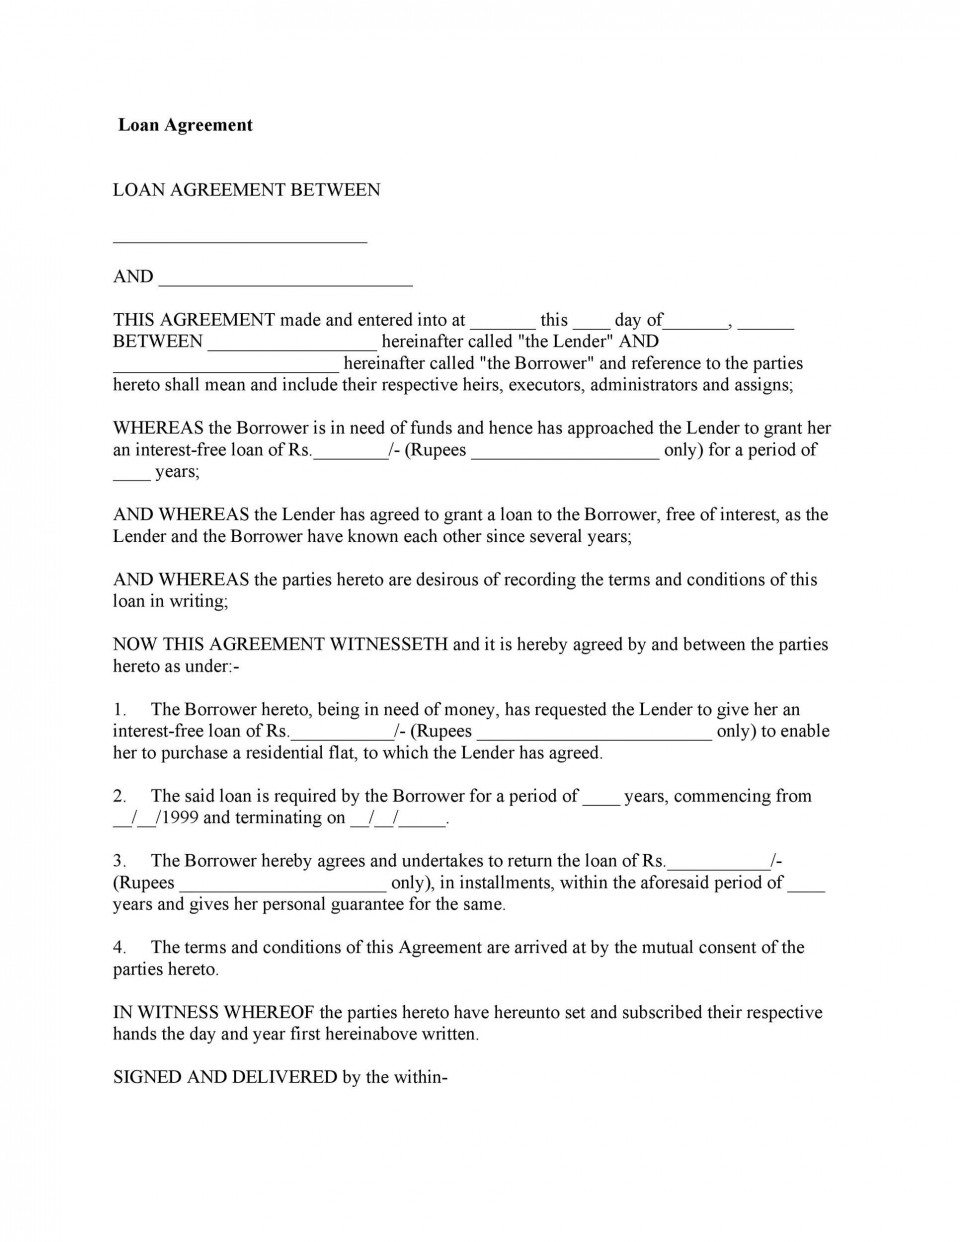 009 Fascinating Family Loan Agreement Template Image  Free Uk Friend And Simple Australia960